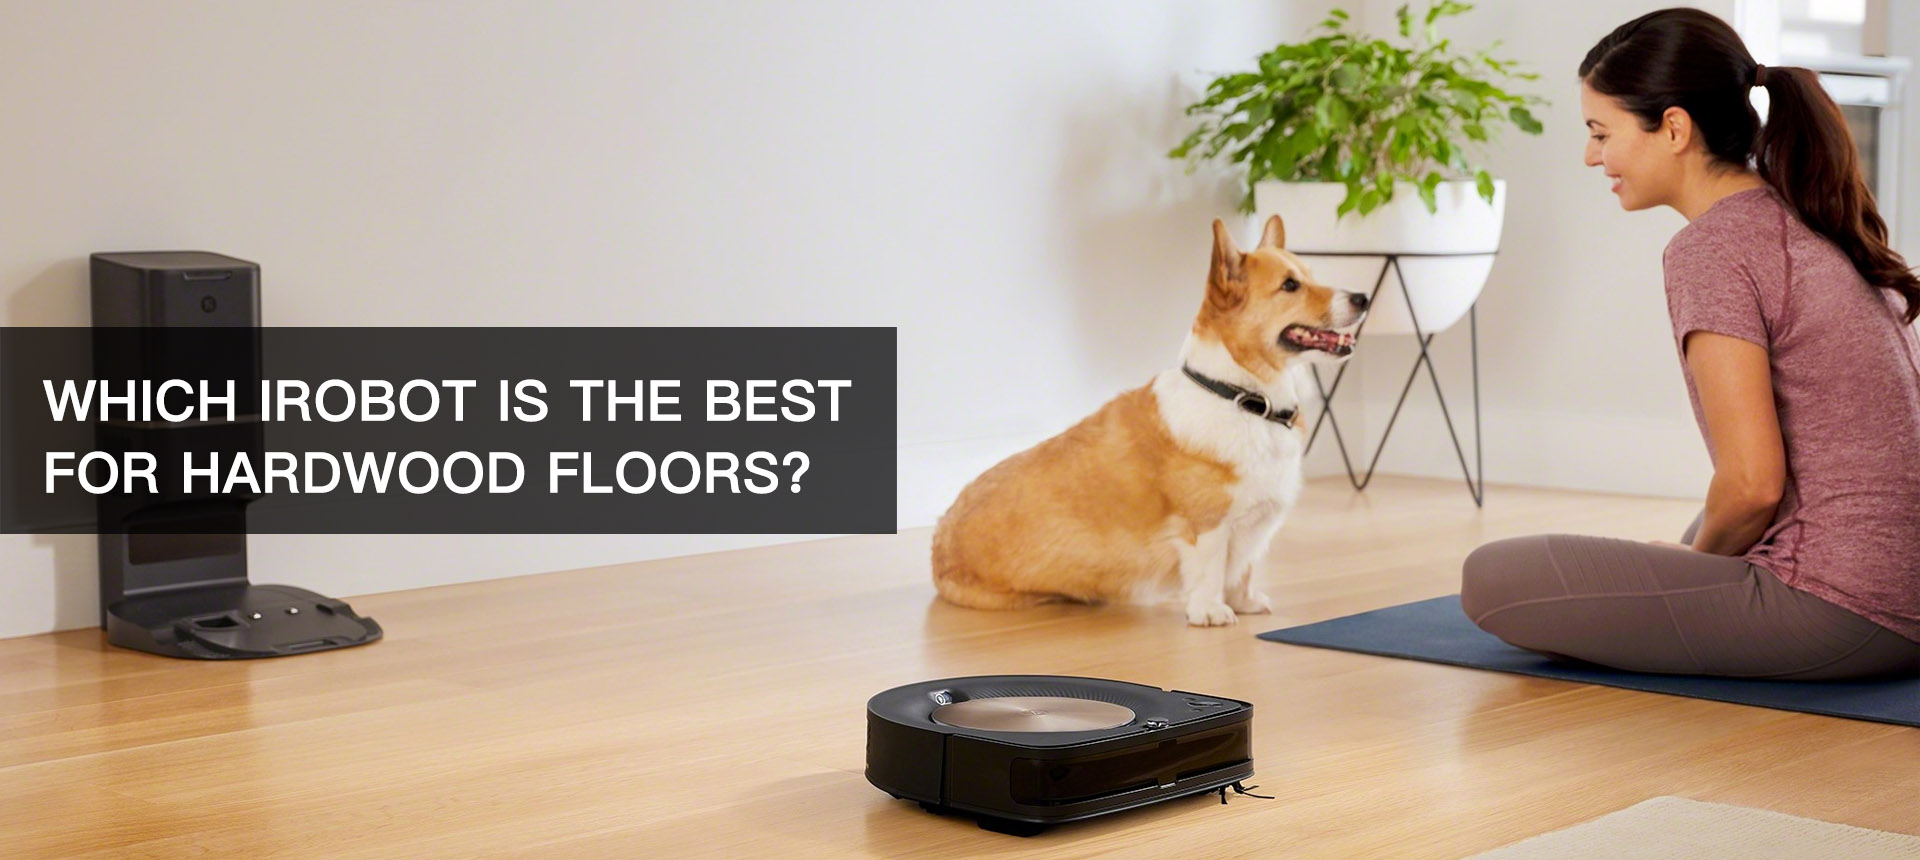 Which iRobot is the Best for Hardwood Floors